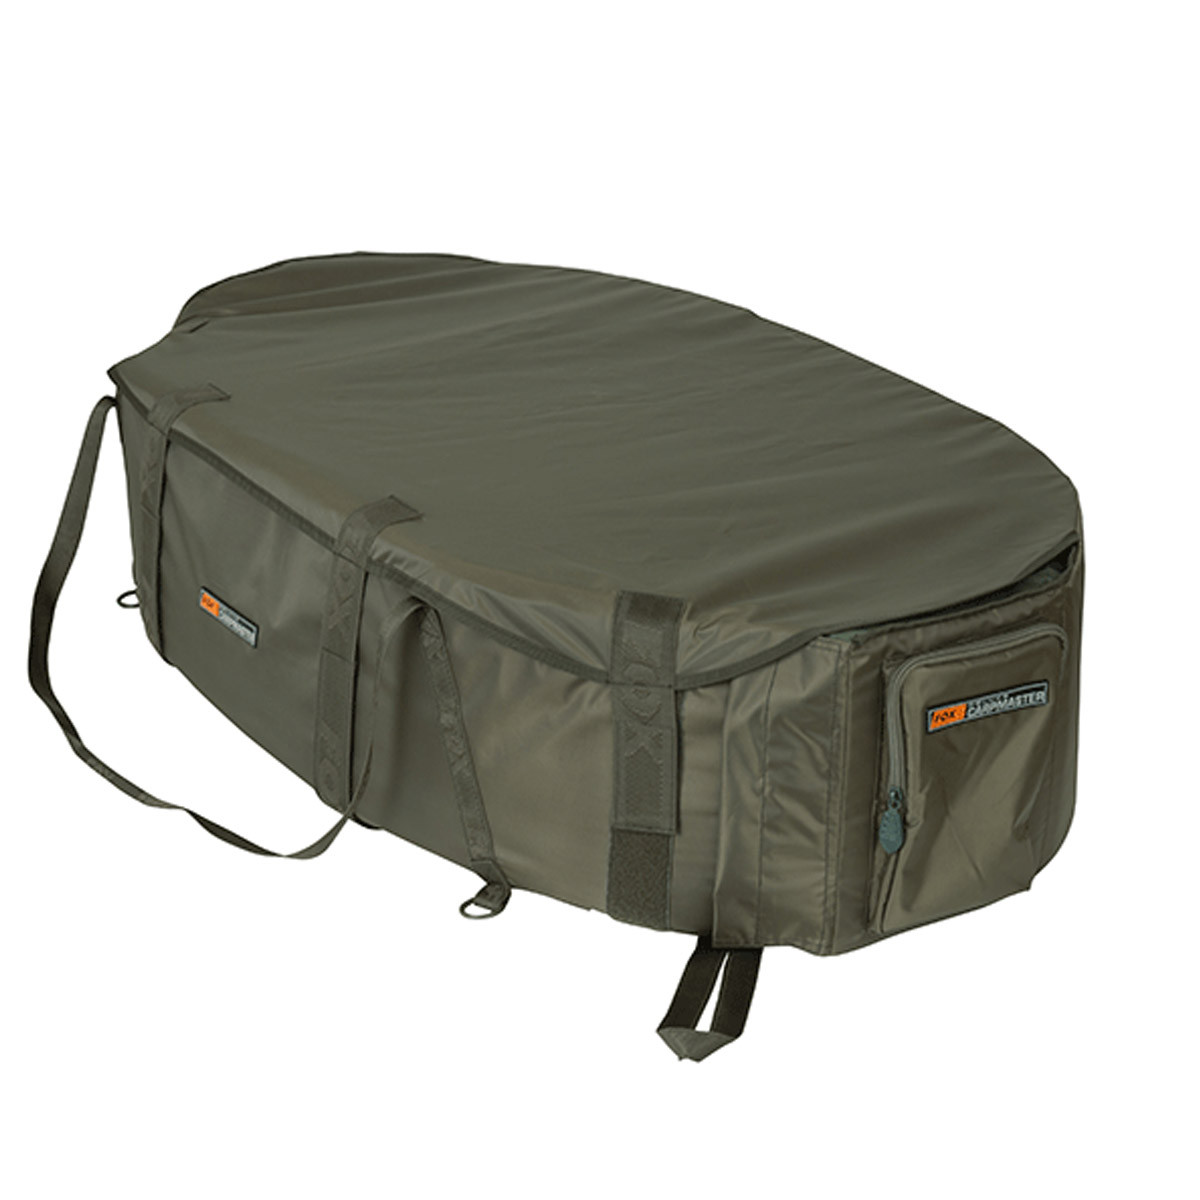 Fox Carpmaster Deluxe Unhooking Mat XL